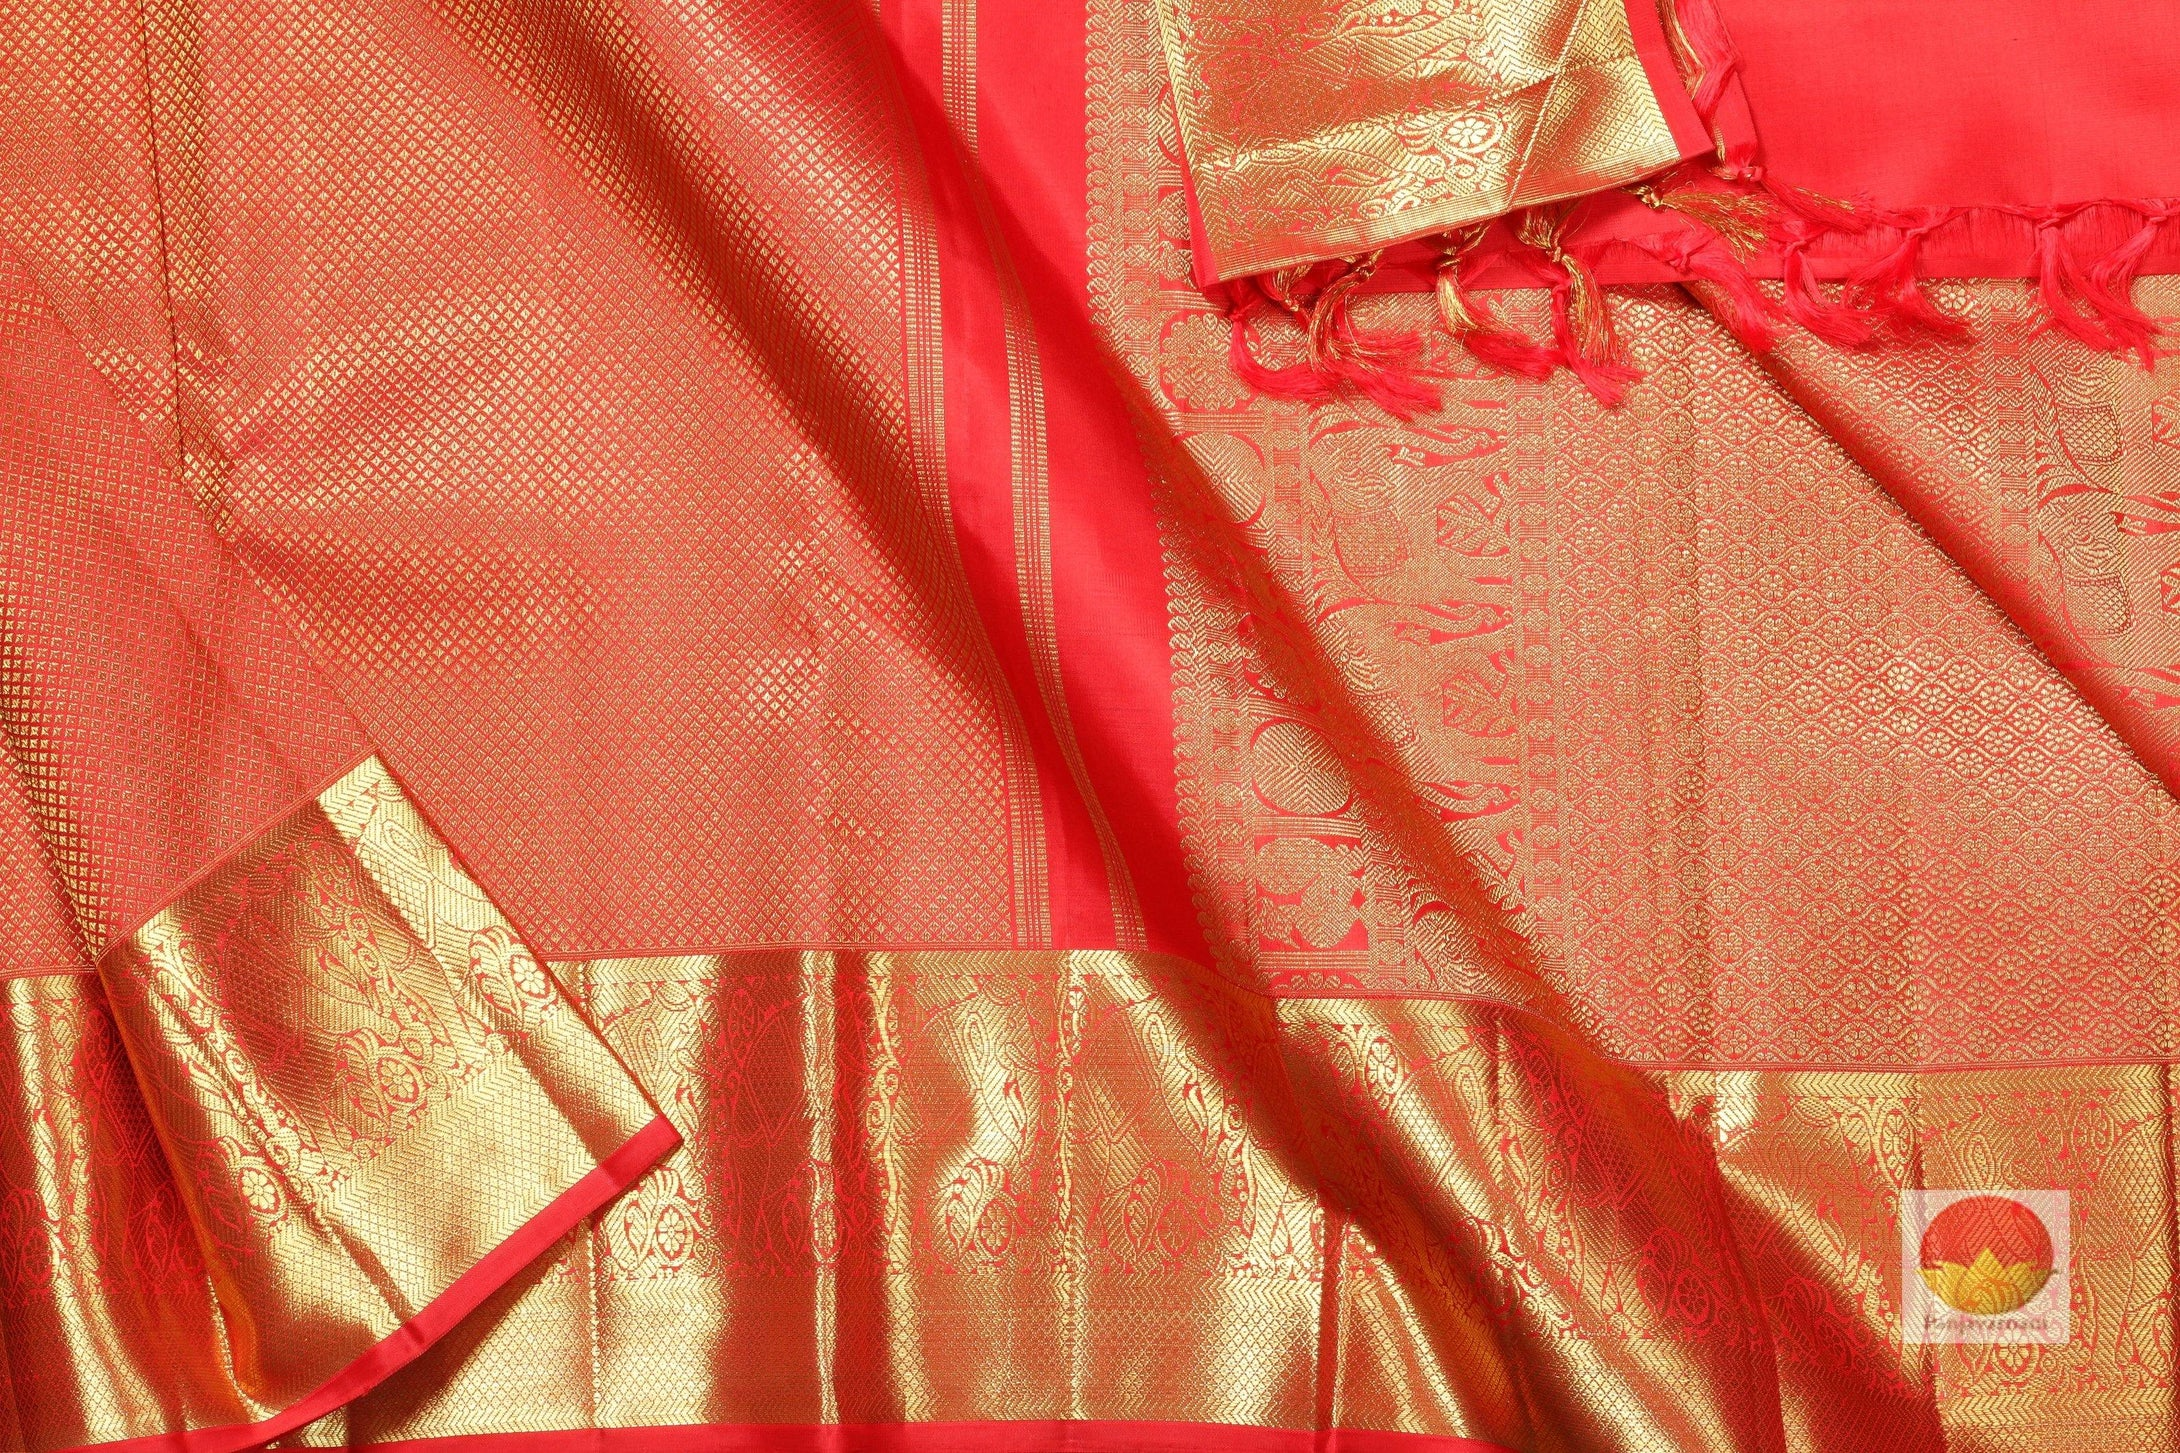 body, border and pallu of orange kanjivaram pure silk saree